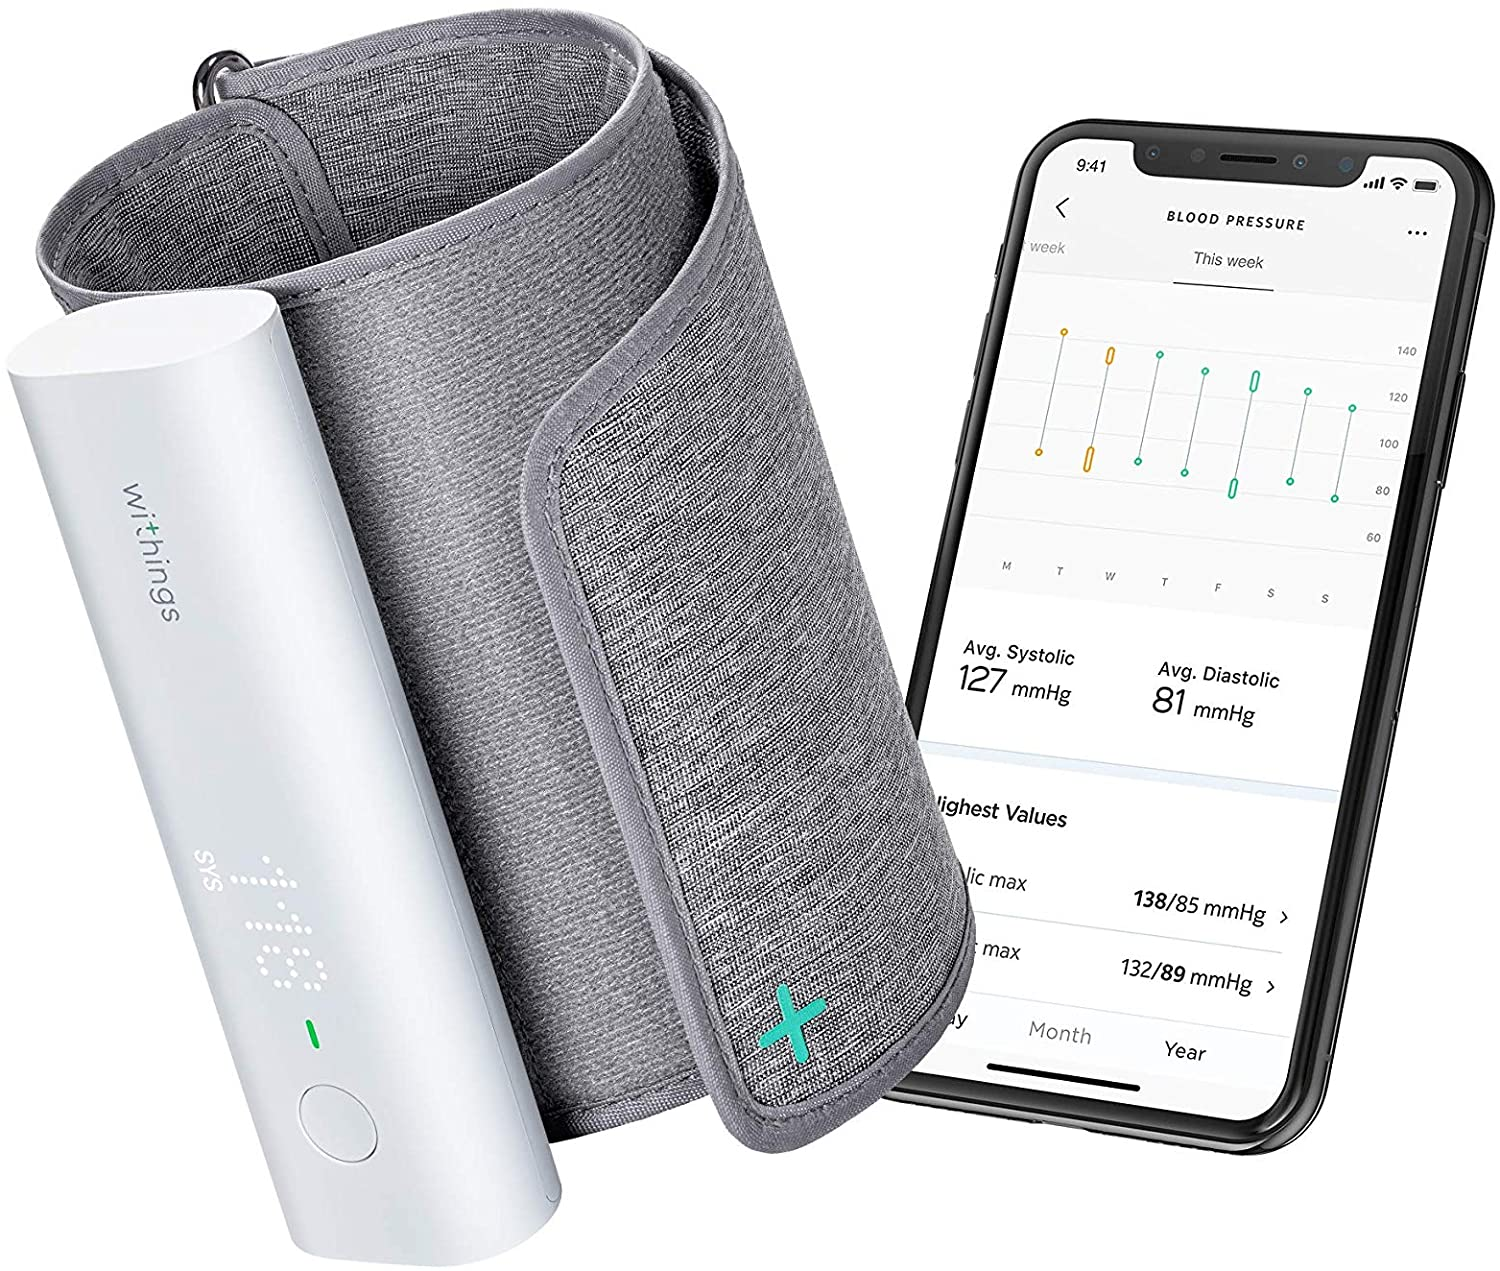 Smart health/fitness devices gift guide blood pressure monitor